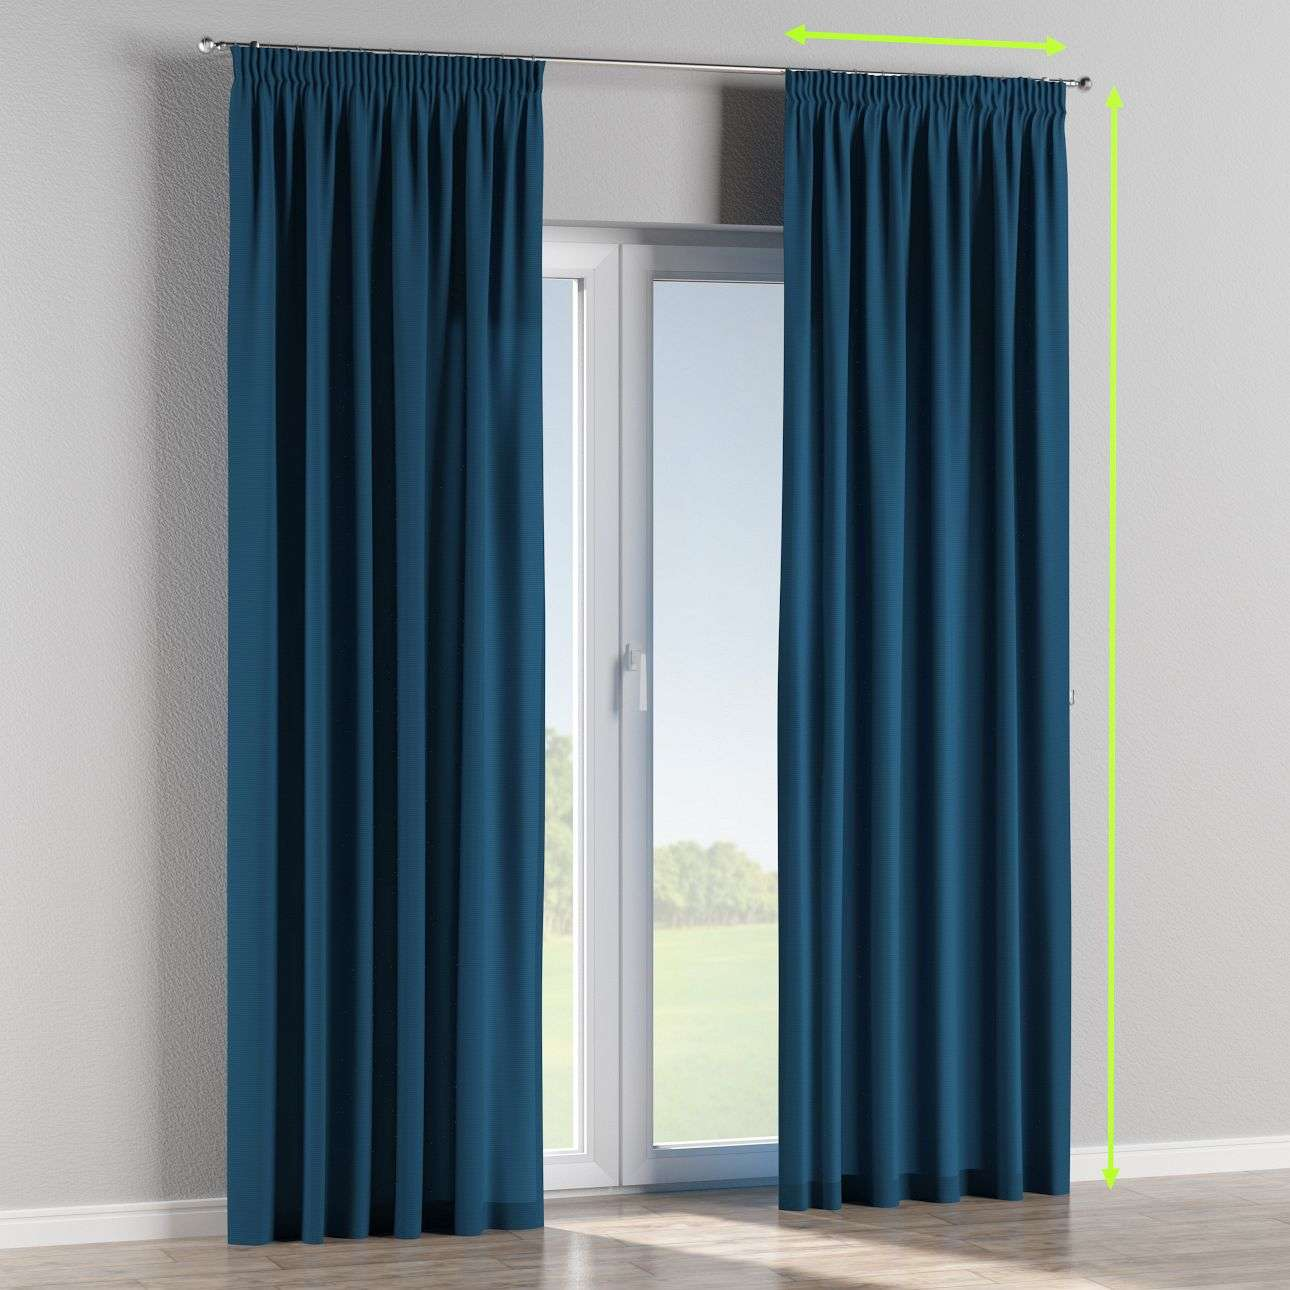 Pencil pleat lined curtains in collection Cotton Panama, fabric: 702-30